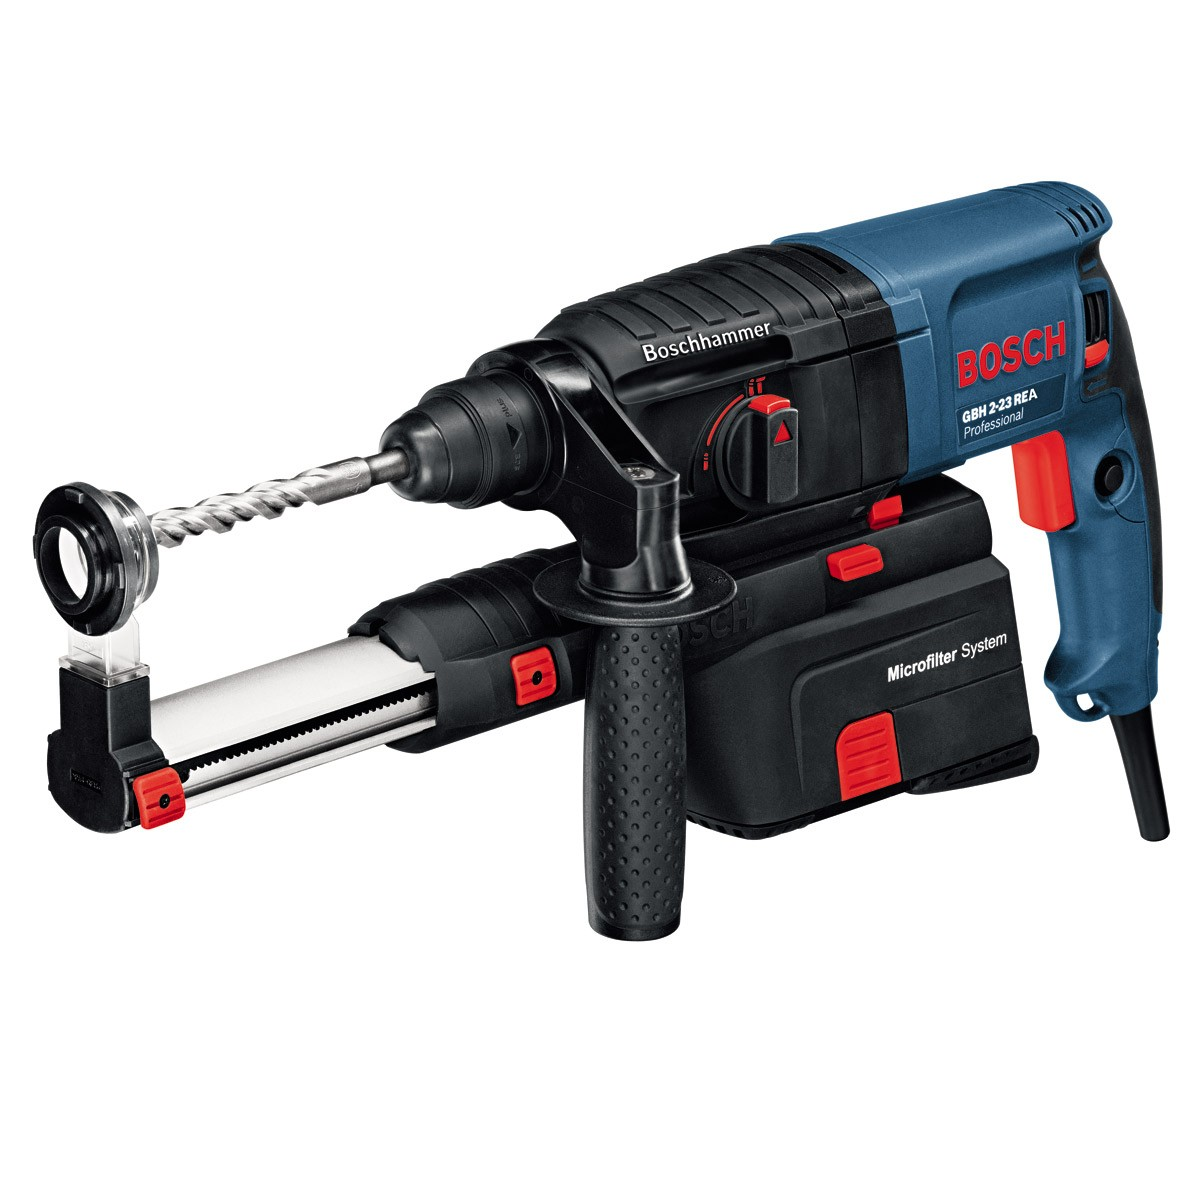 Bosch GBH 2-23 REA SDS+ Rotary Hammer Inc Dust Extraction in Carry Case